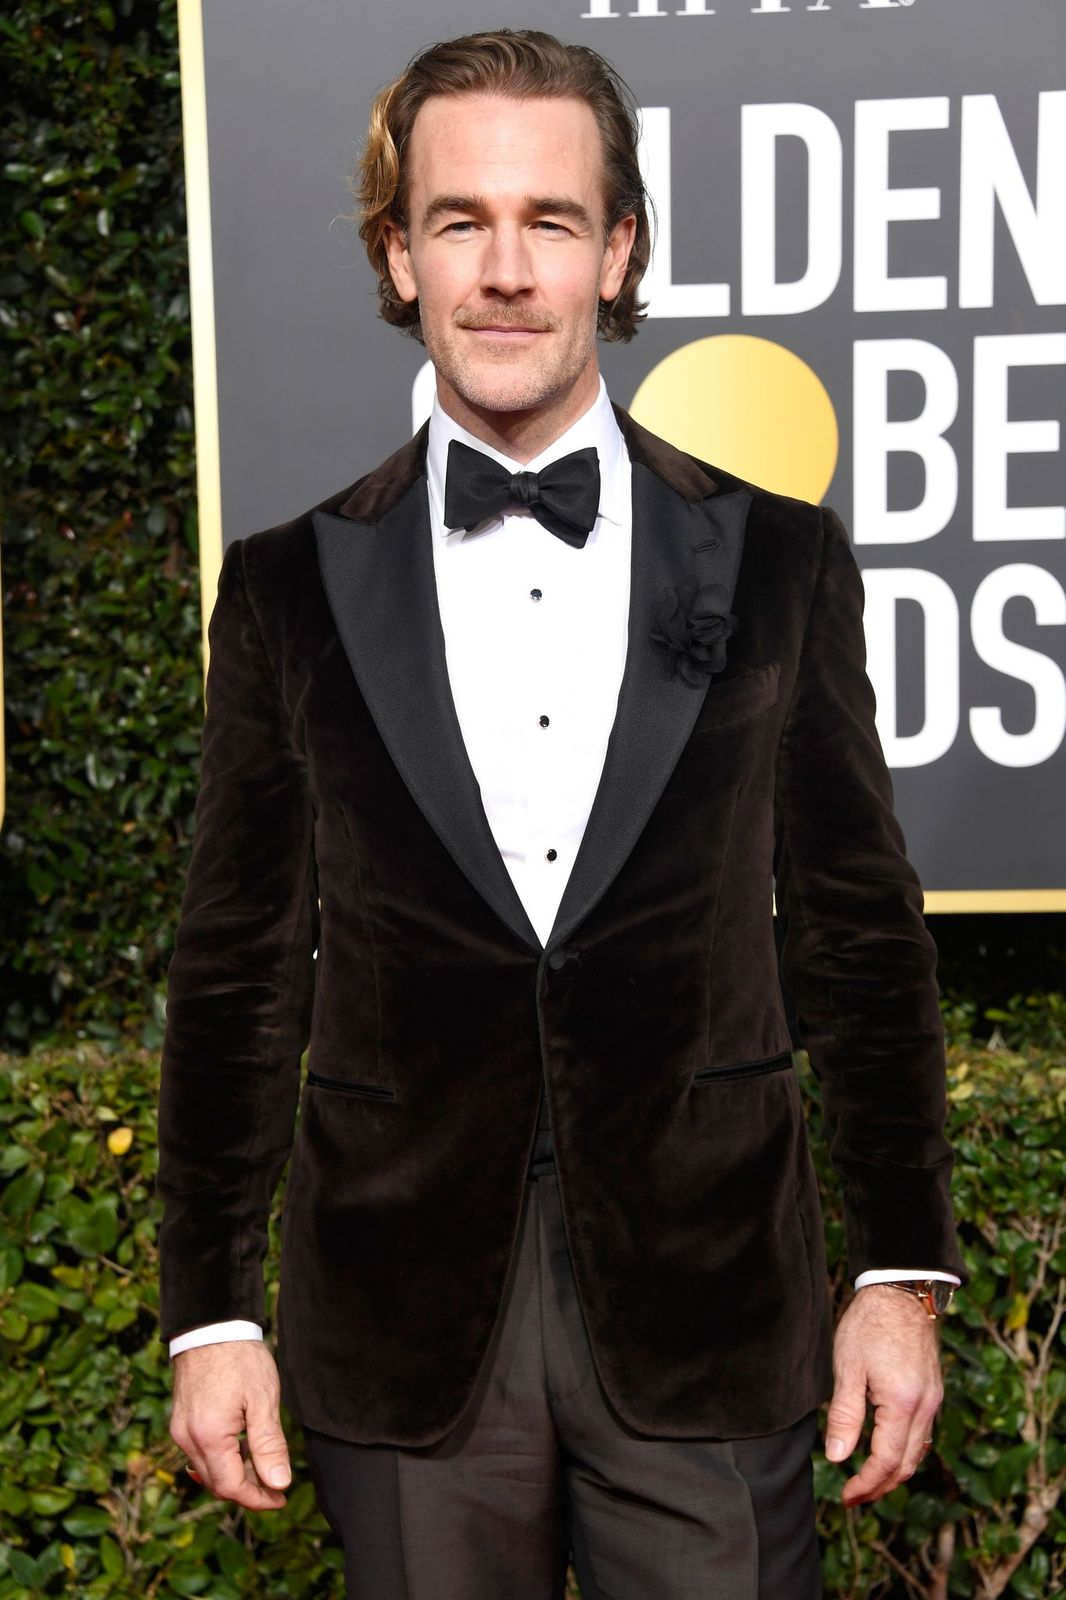 James Van Der Beek at the 76th Annual Golden Globe Awards at The Beverly Hilton Hotel on January 6, 2019 | Getty Images